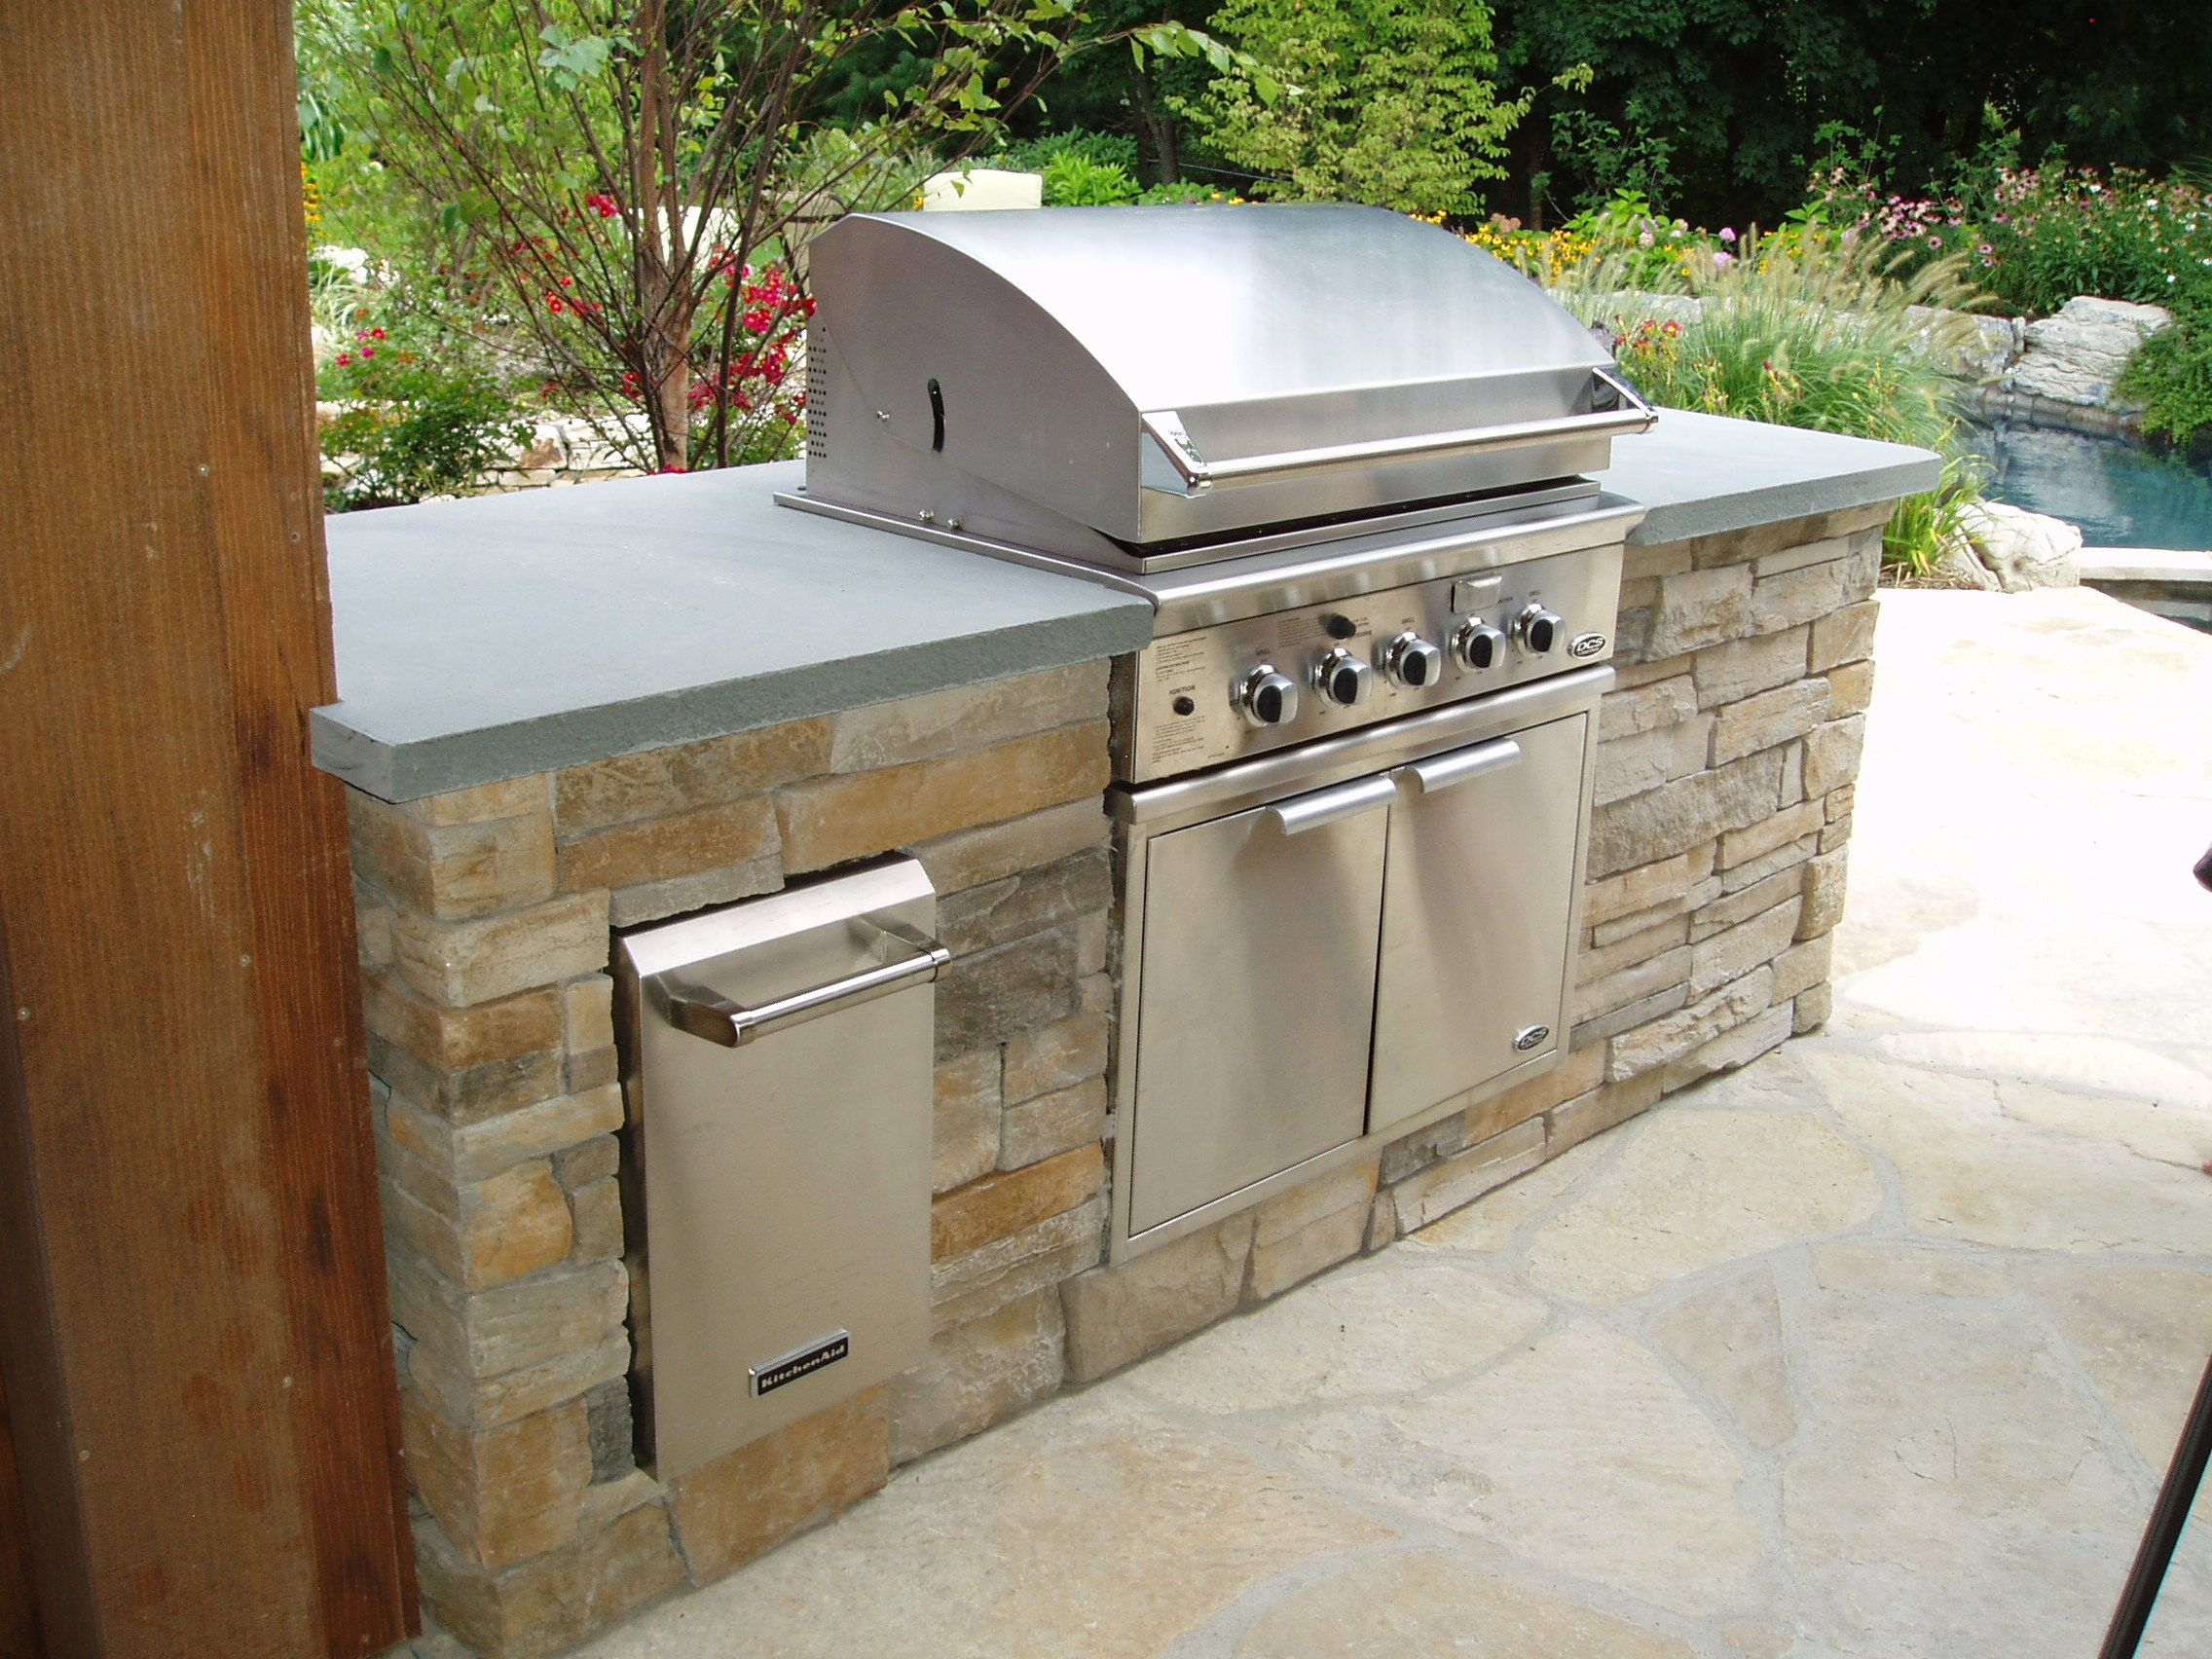 Outdoor Kitchen Griddle Brand New Cost Grill Find And Cooking Is Very